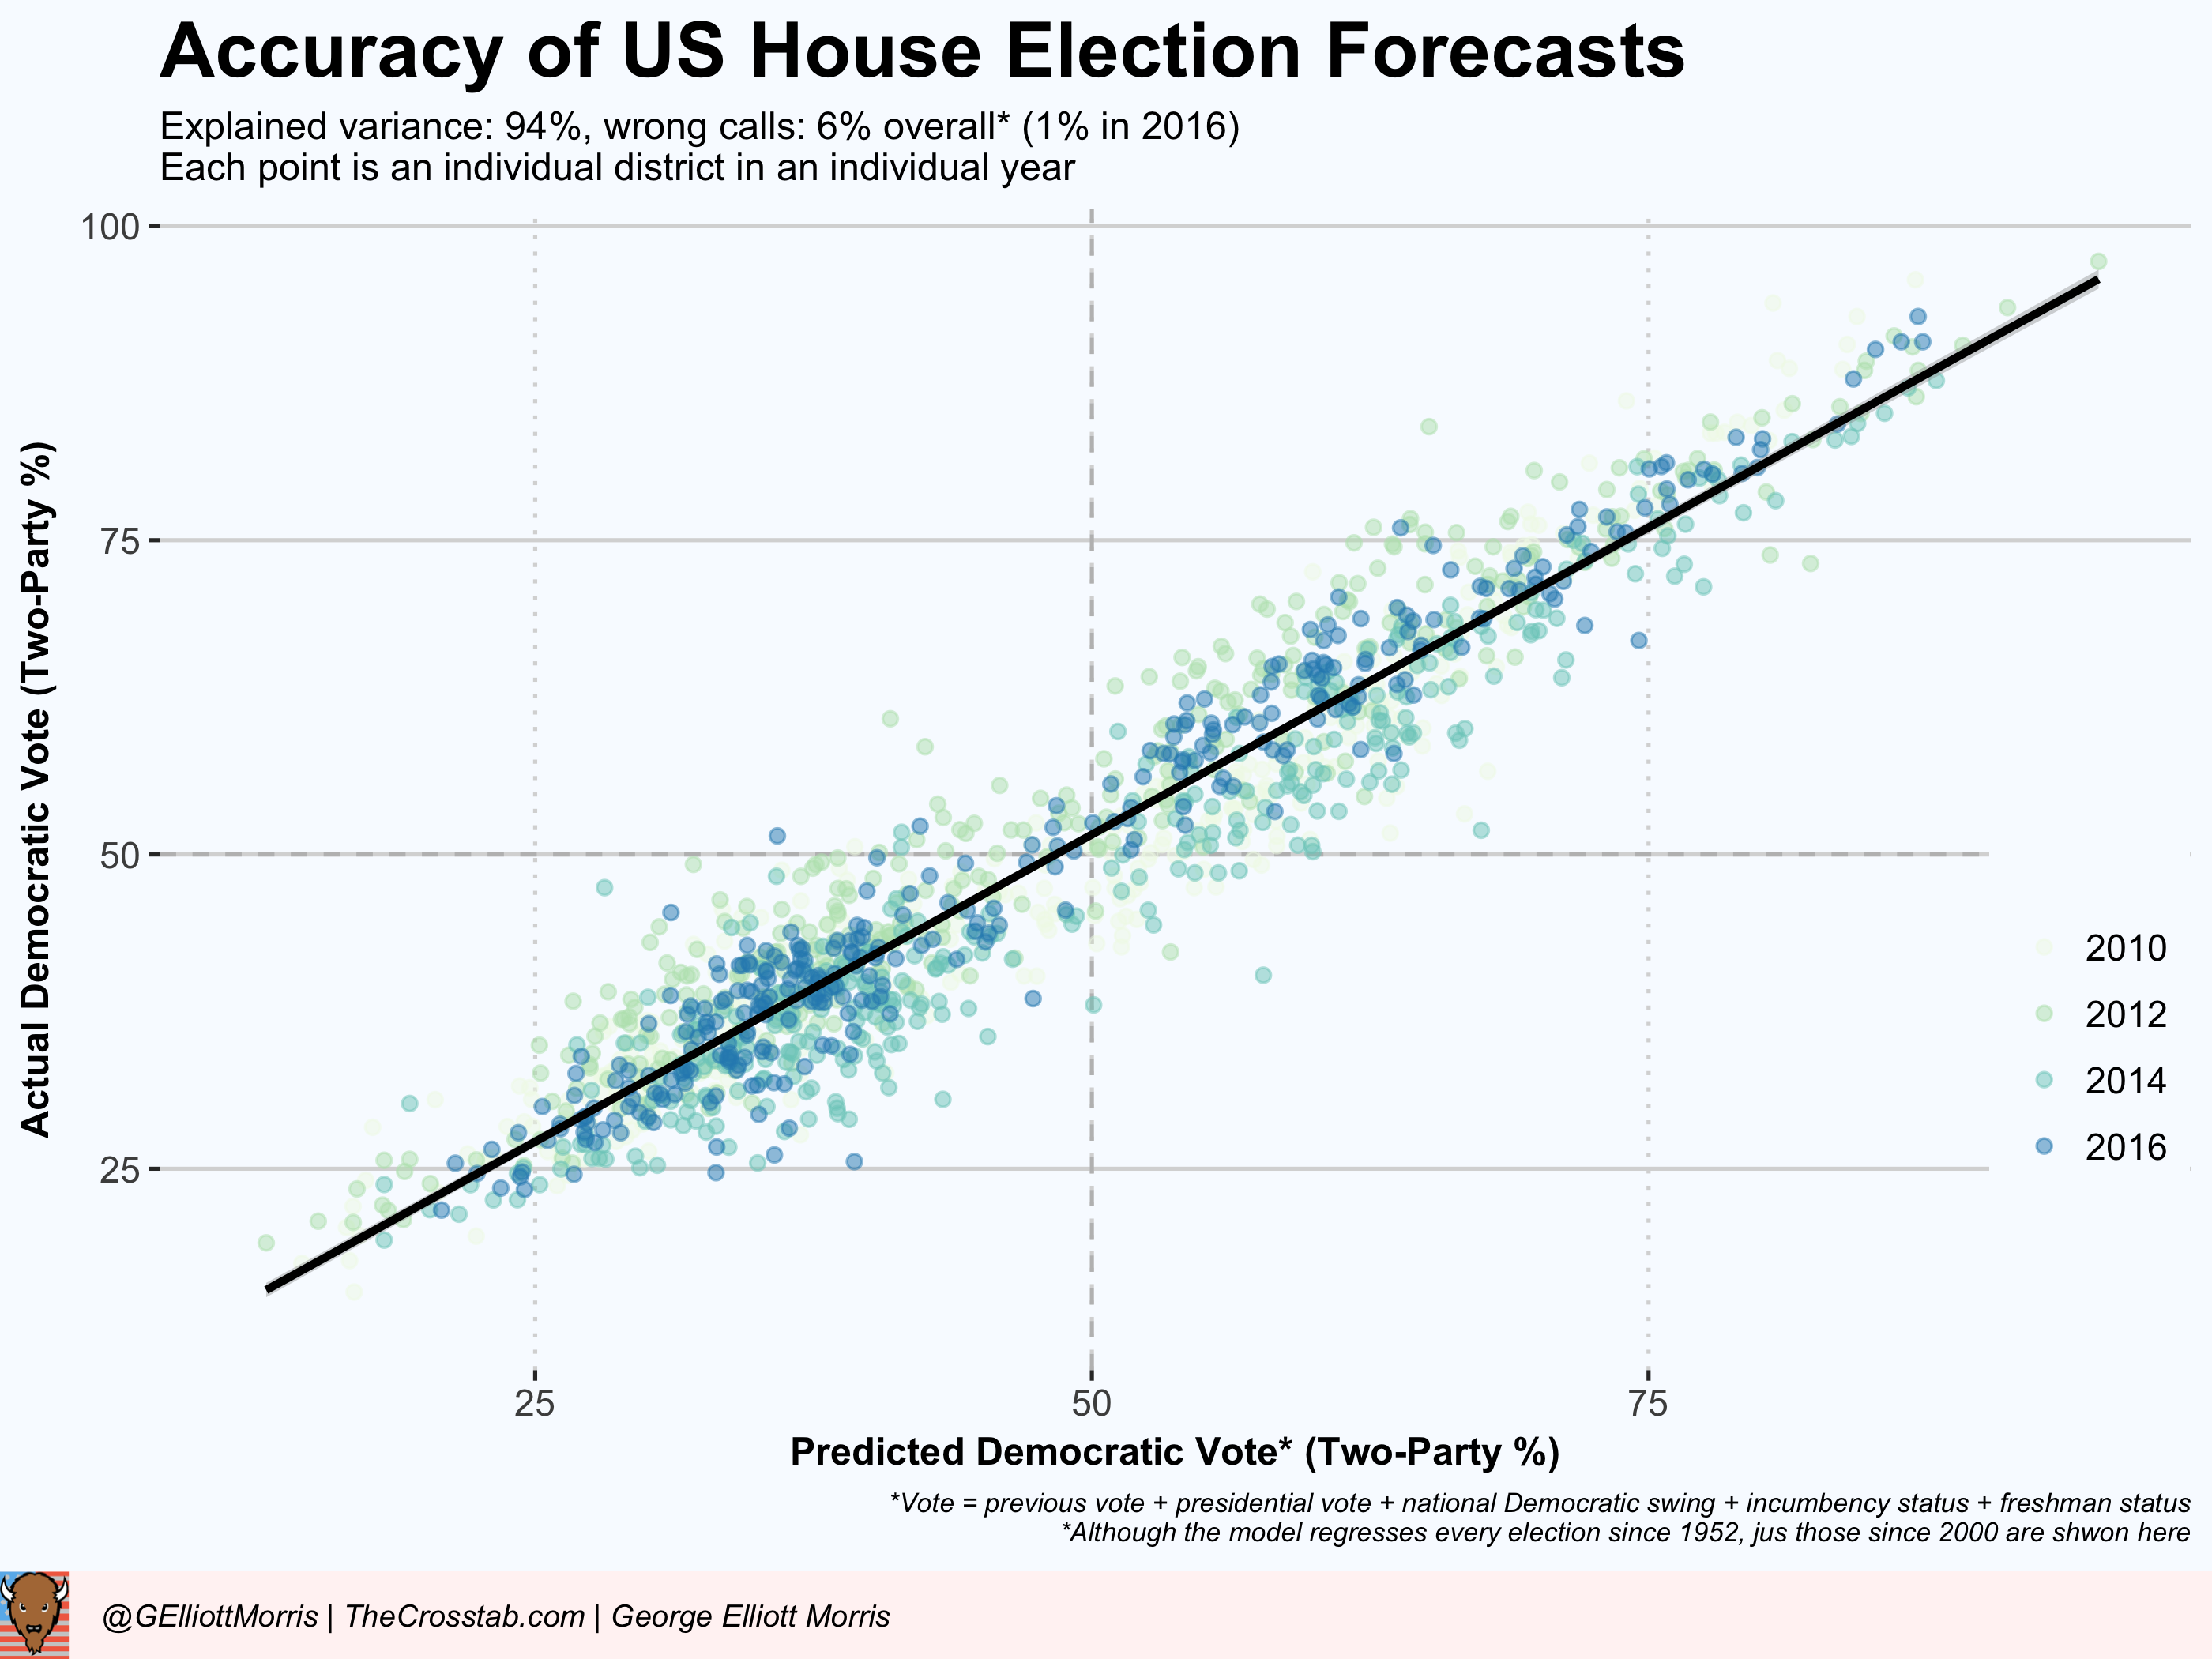 Running The Model Retrospectively A Forecast In 2014 Would Have Mispredicted 4 Seats Instead Of Picking 188 Seats For The Democrats The Model Predicted A